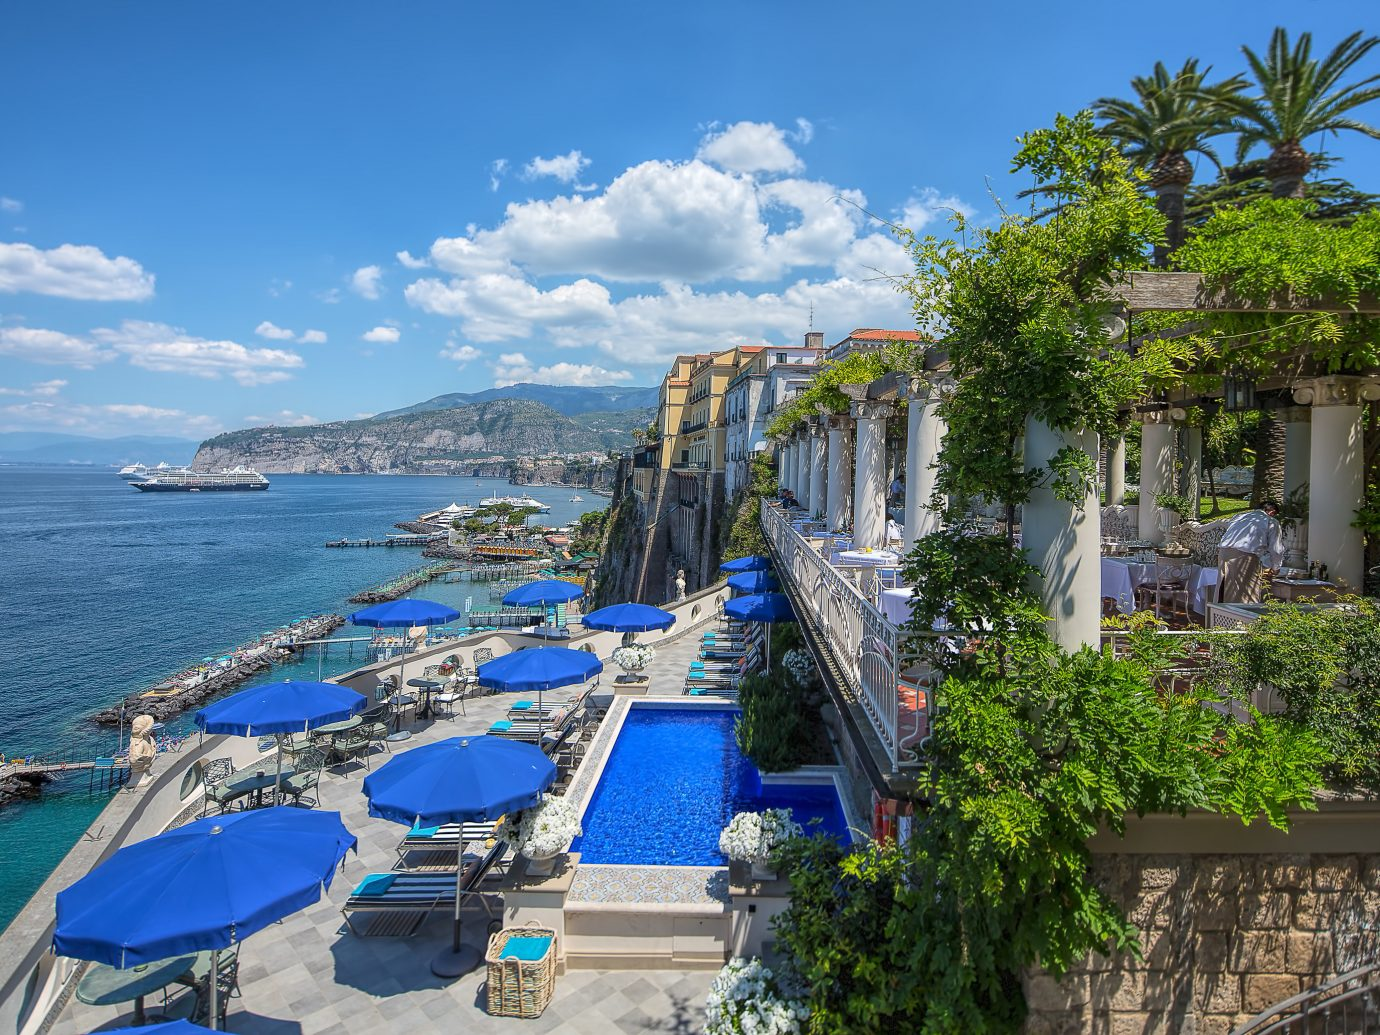 GRAND HOTEL EXCELSIOR VITTORIA • SORRENTO • 5⋆ ITALY • RATES FROM ...